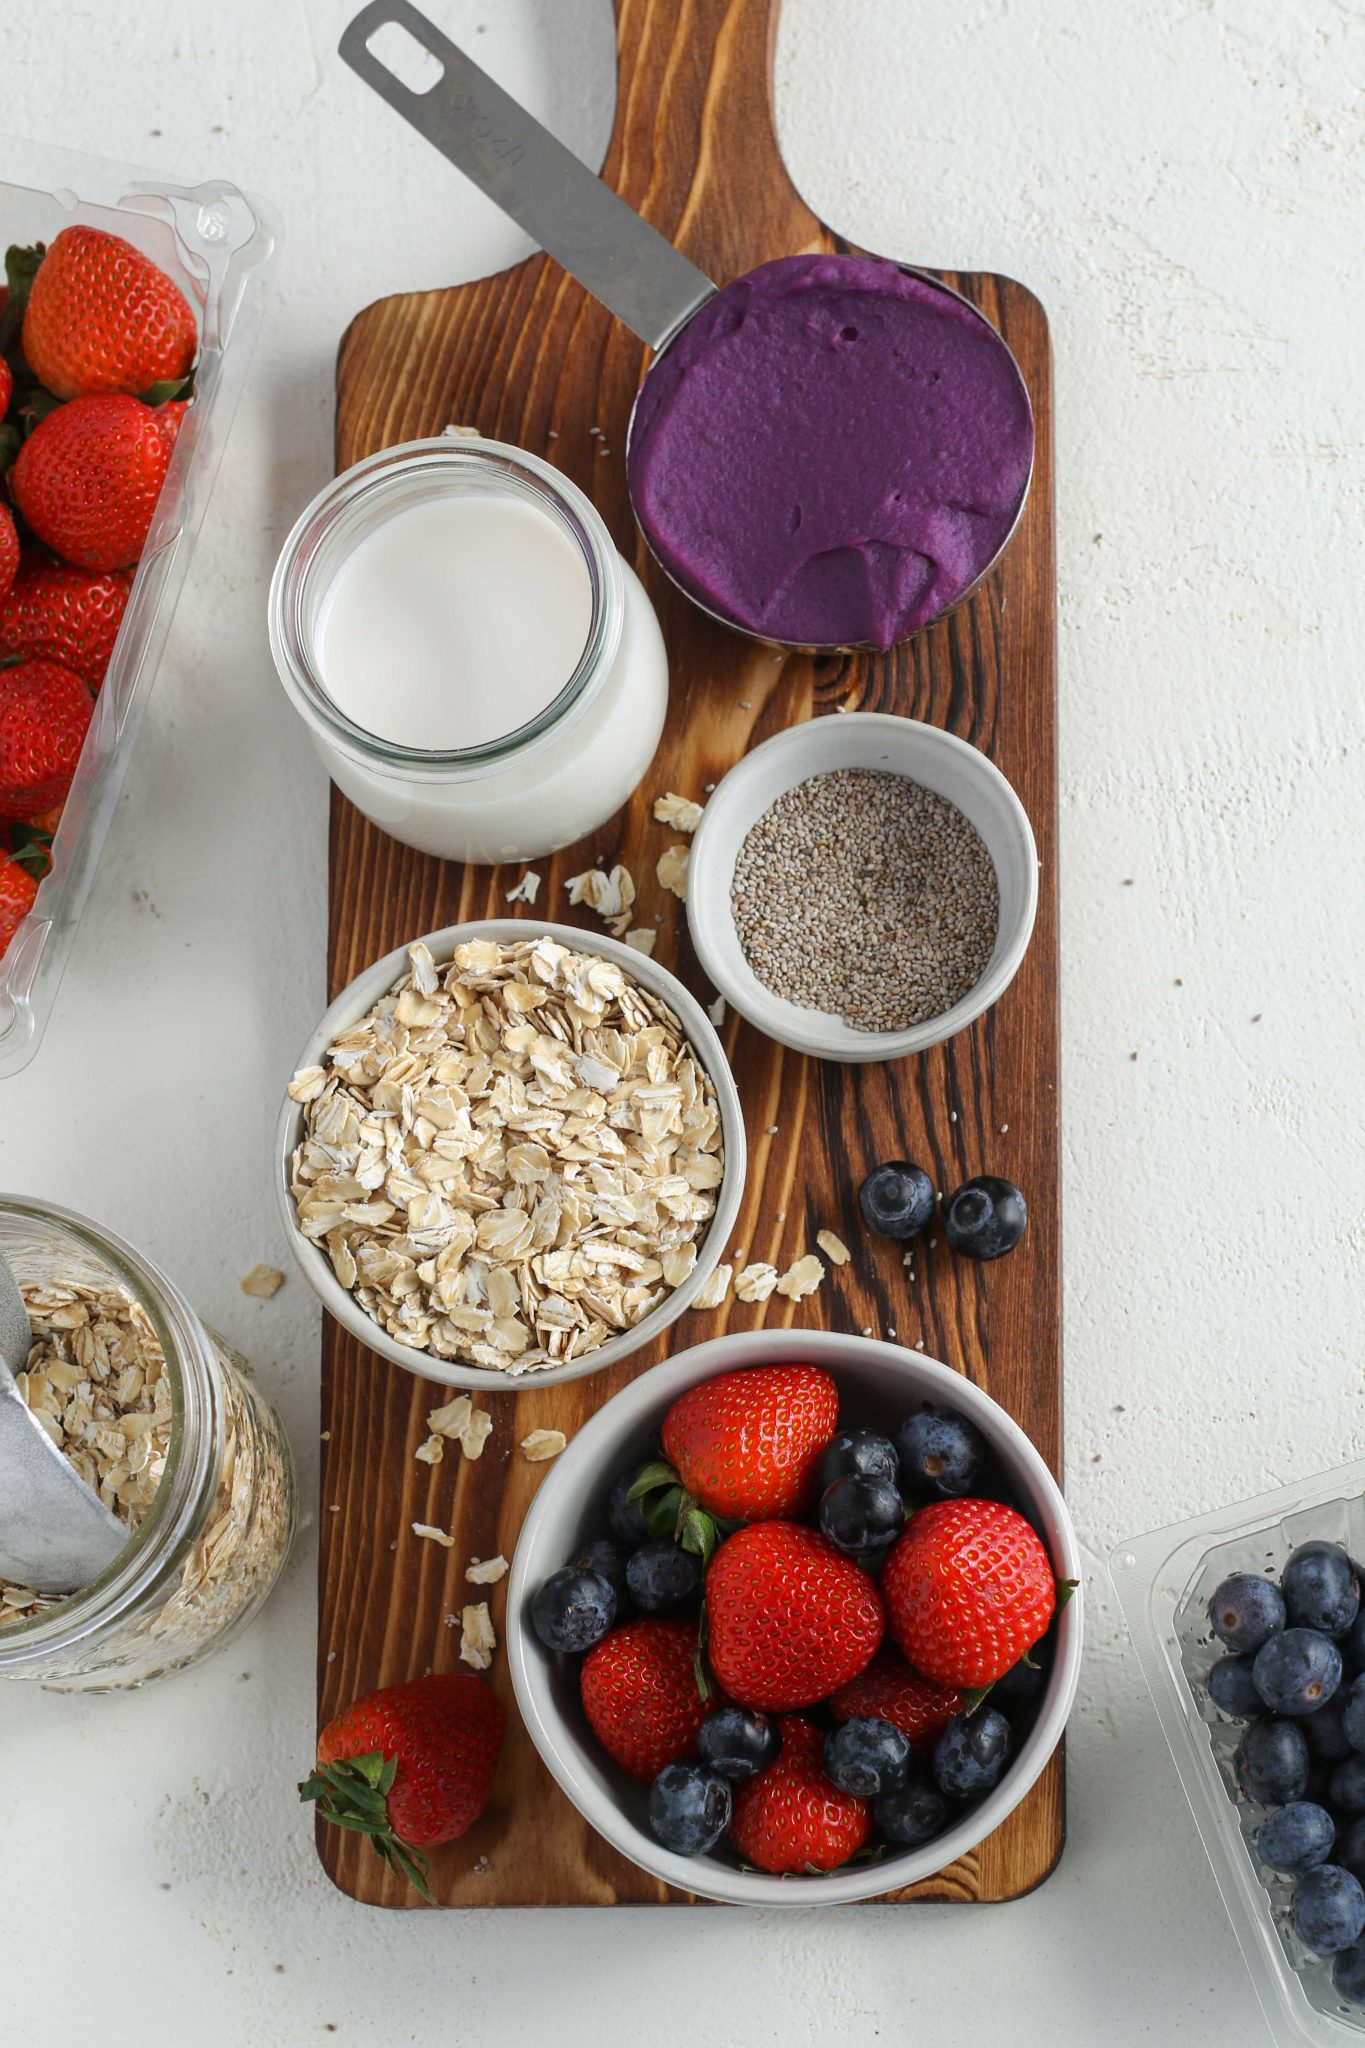 Purple Sweet Potato Overnight Oats Ingredients